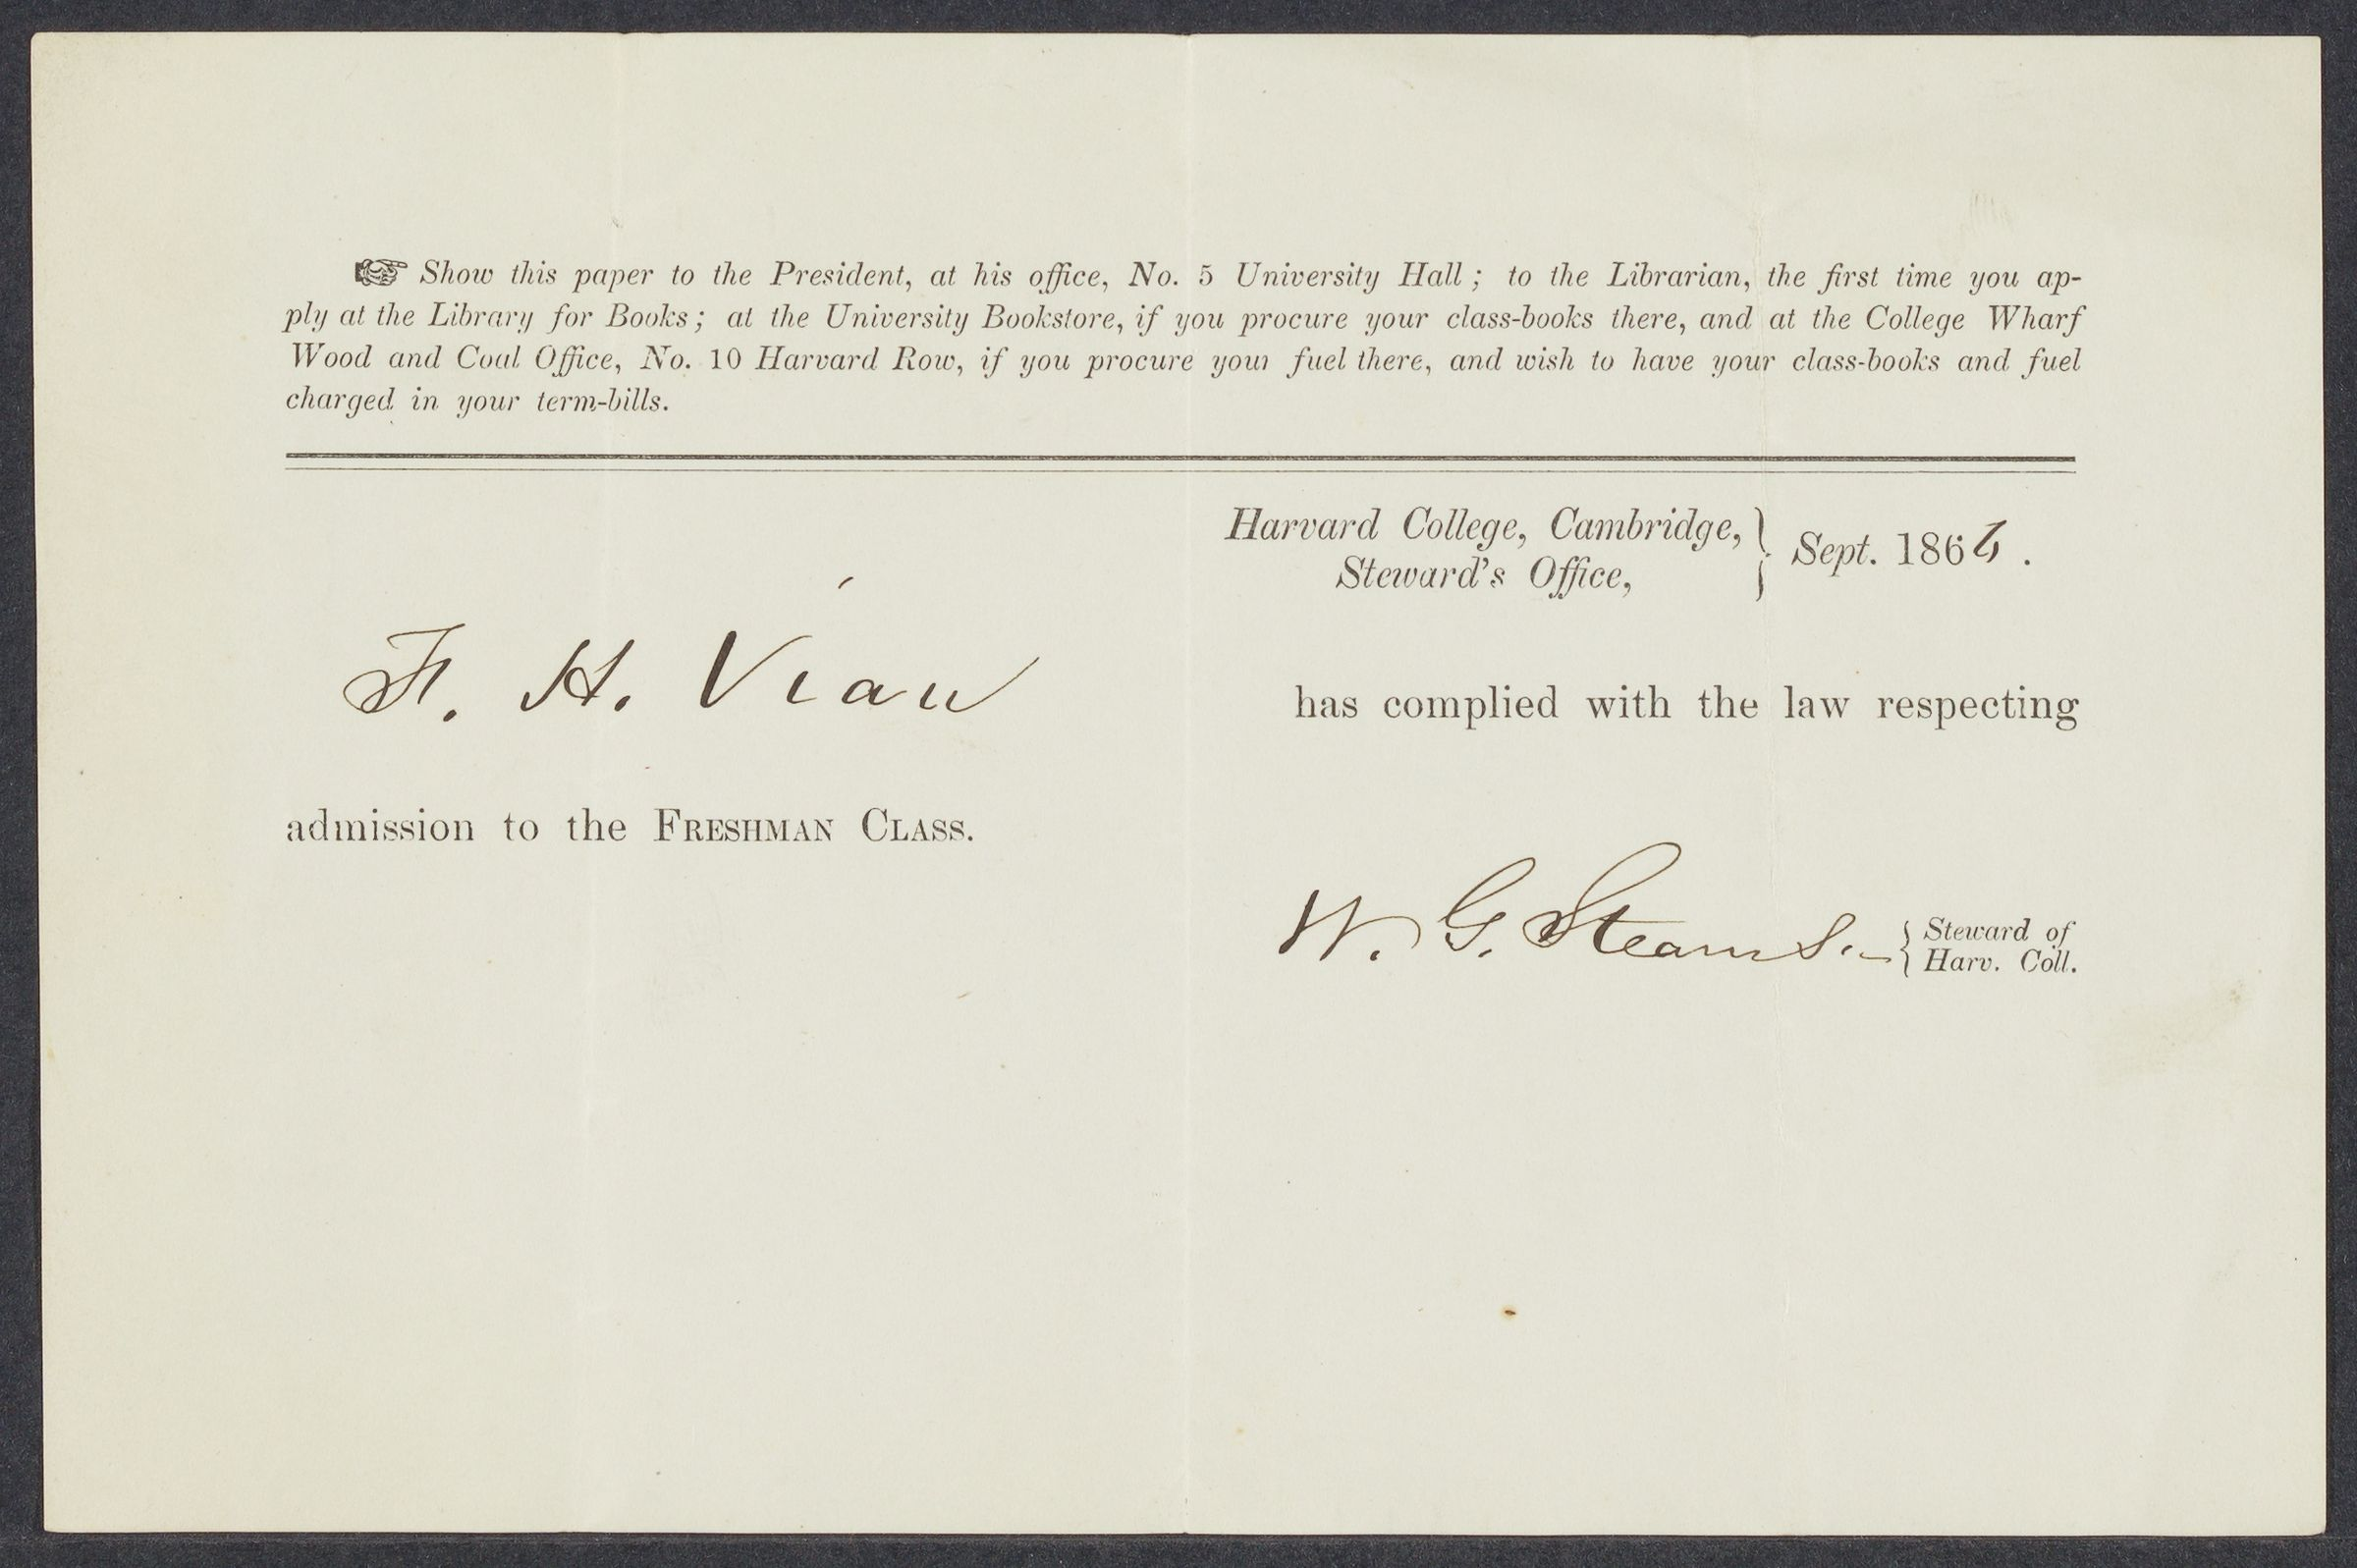 [Certificate of admission of F. H. Viaux], 1866-1867